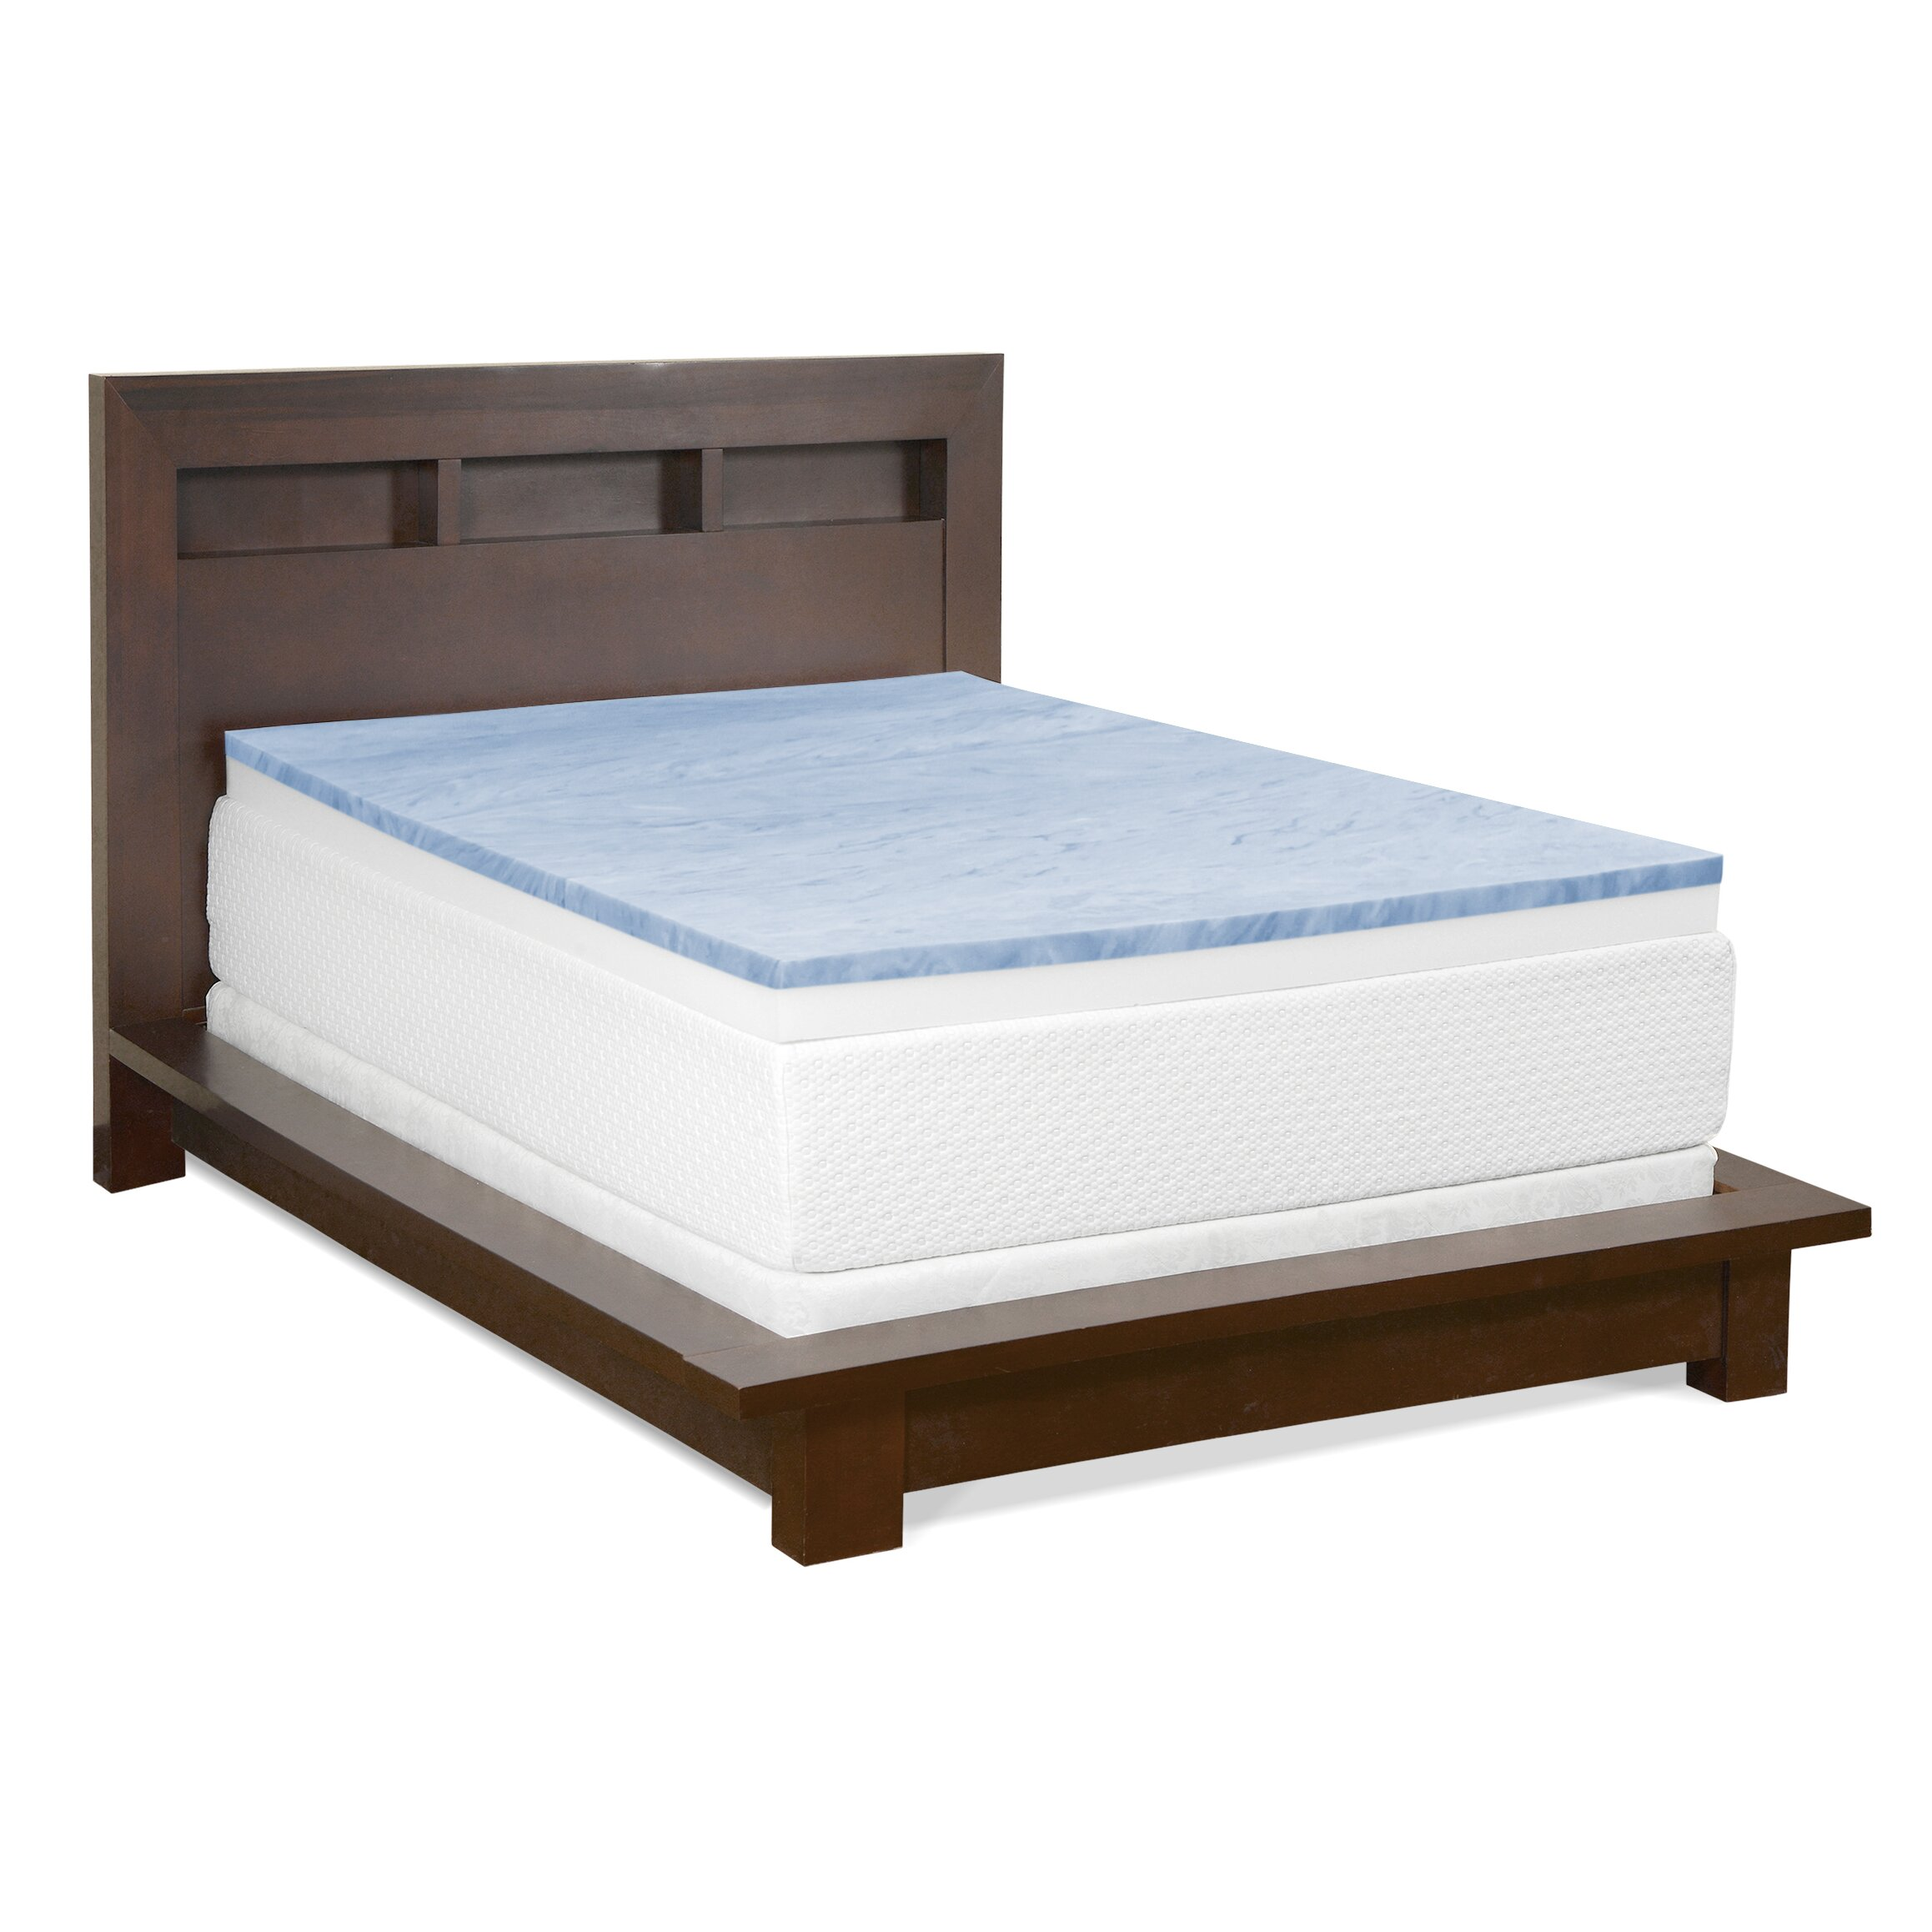 Anew edit 4 gel memory foam mattress topper reviews 4 memory foam mattress topper